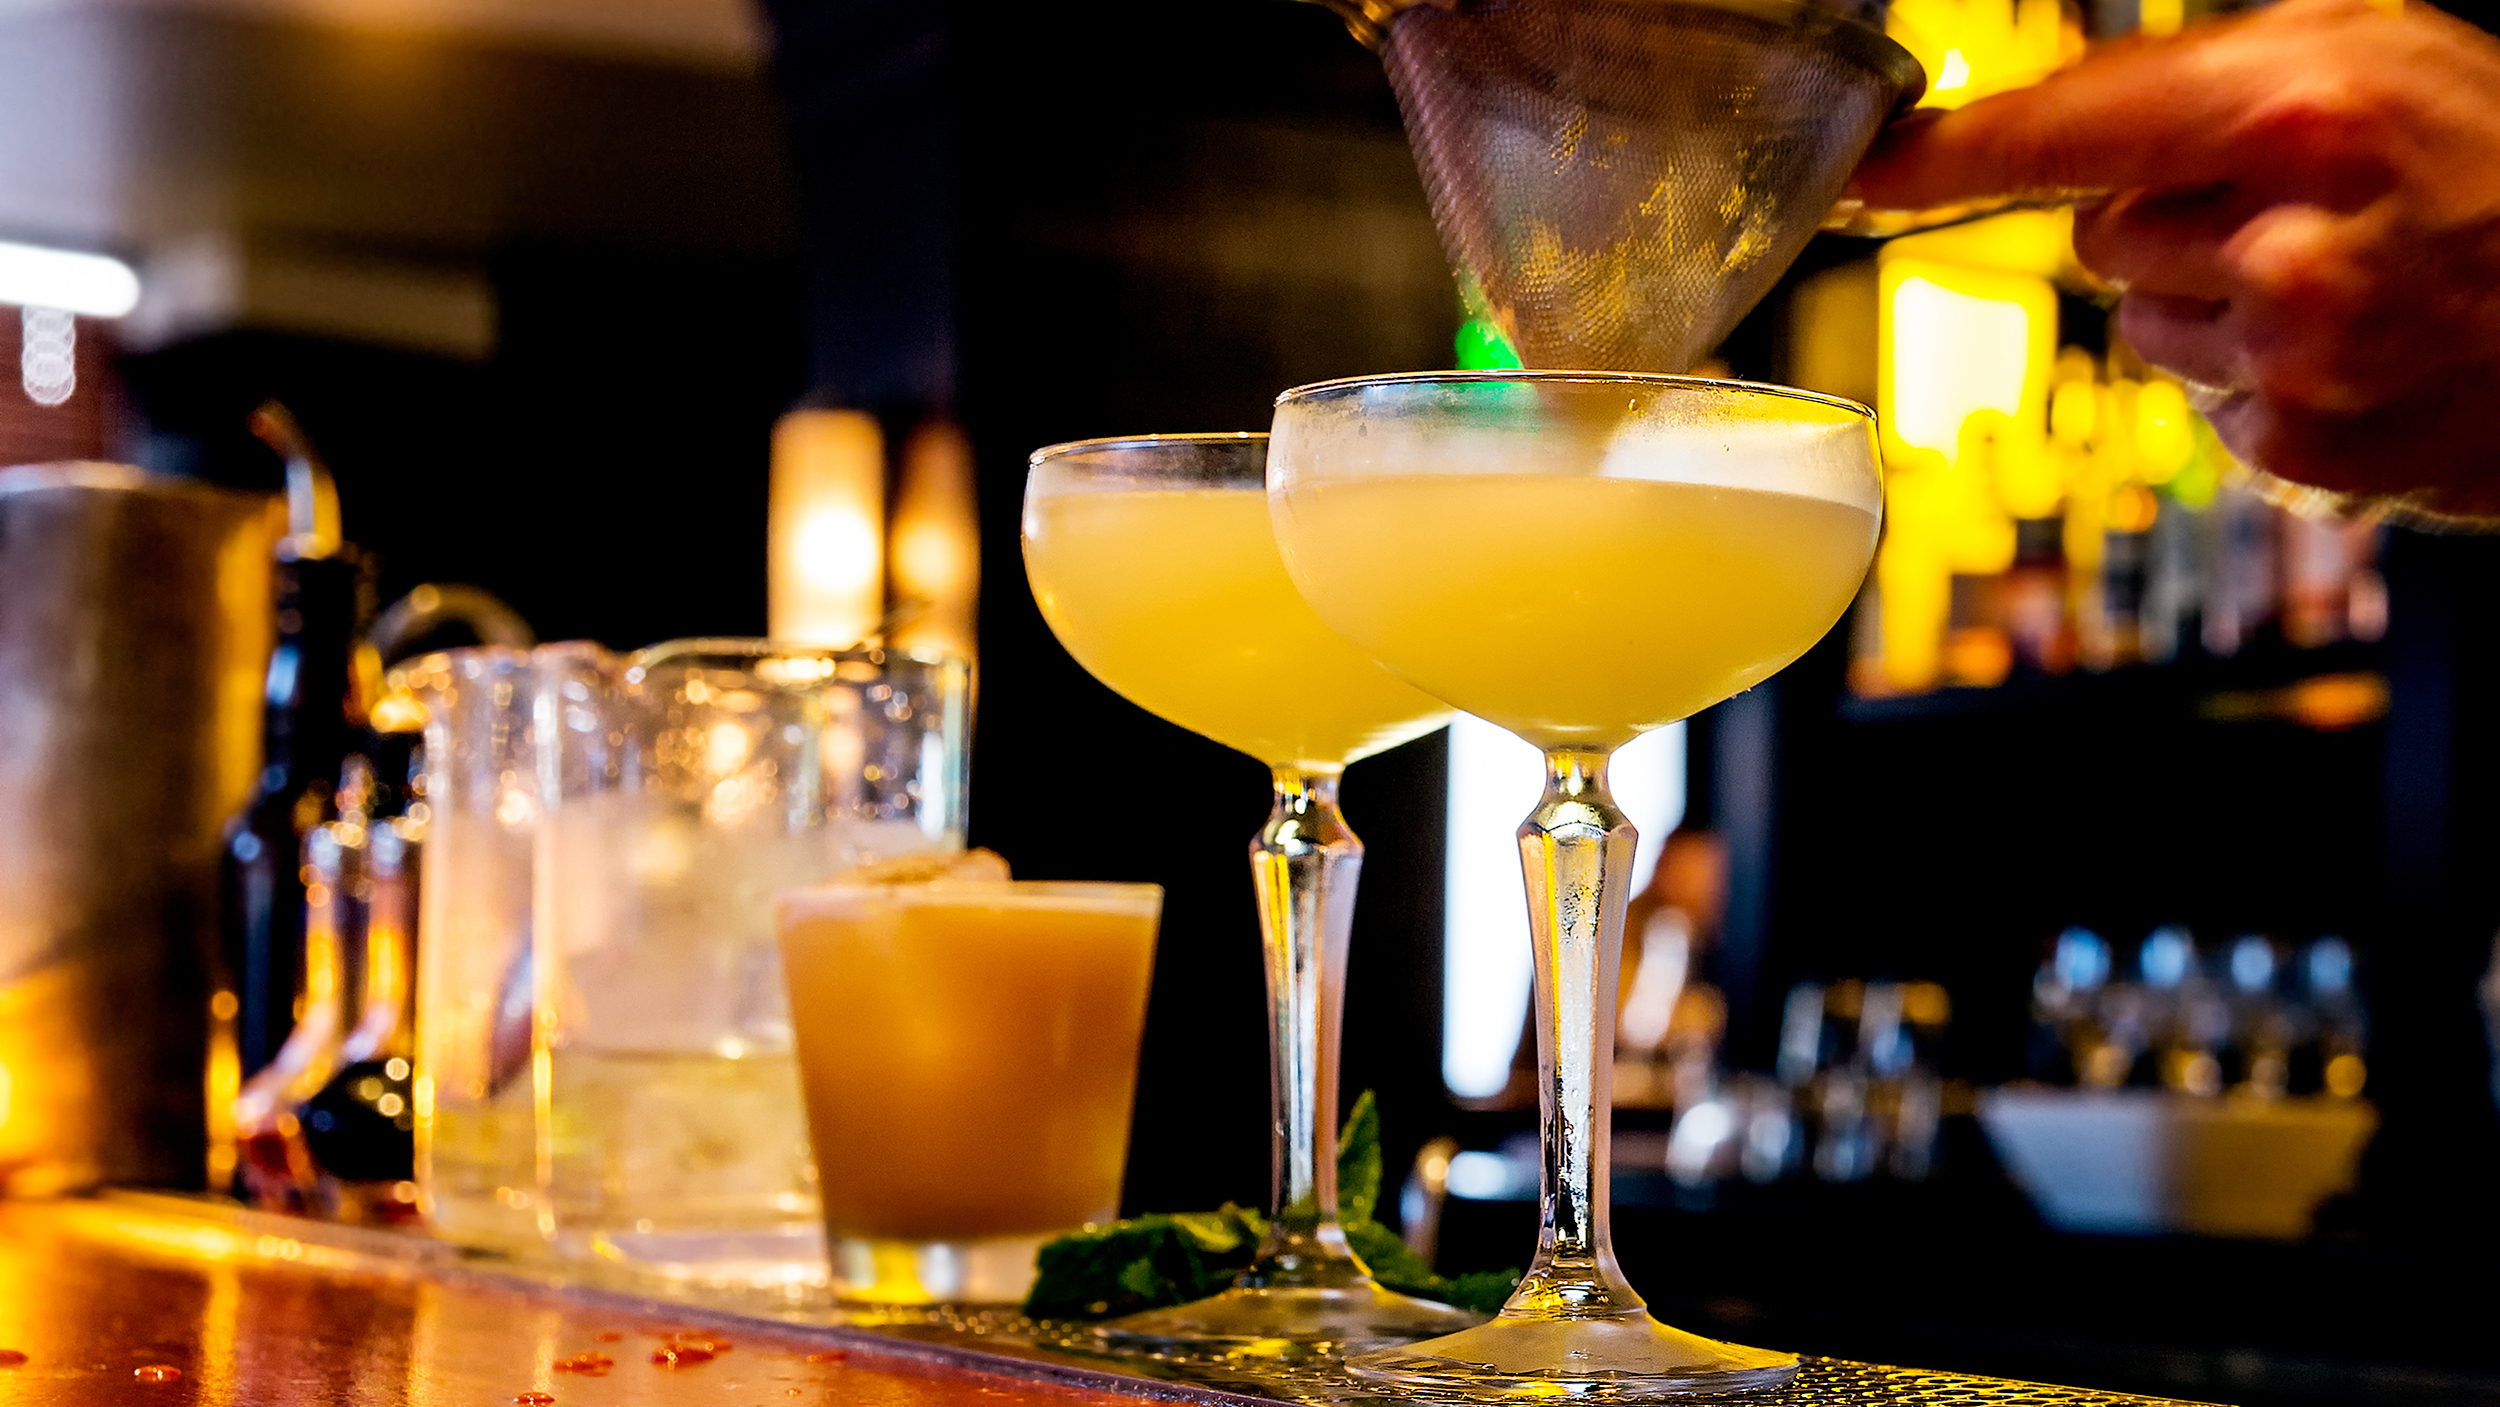 Worlds wackiest cocktails and most unusual drinks  TODAYcom